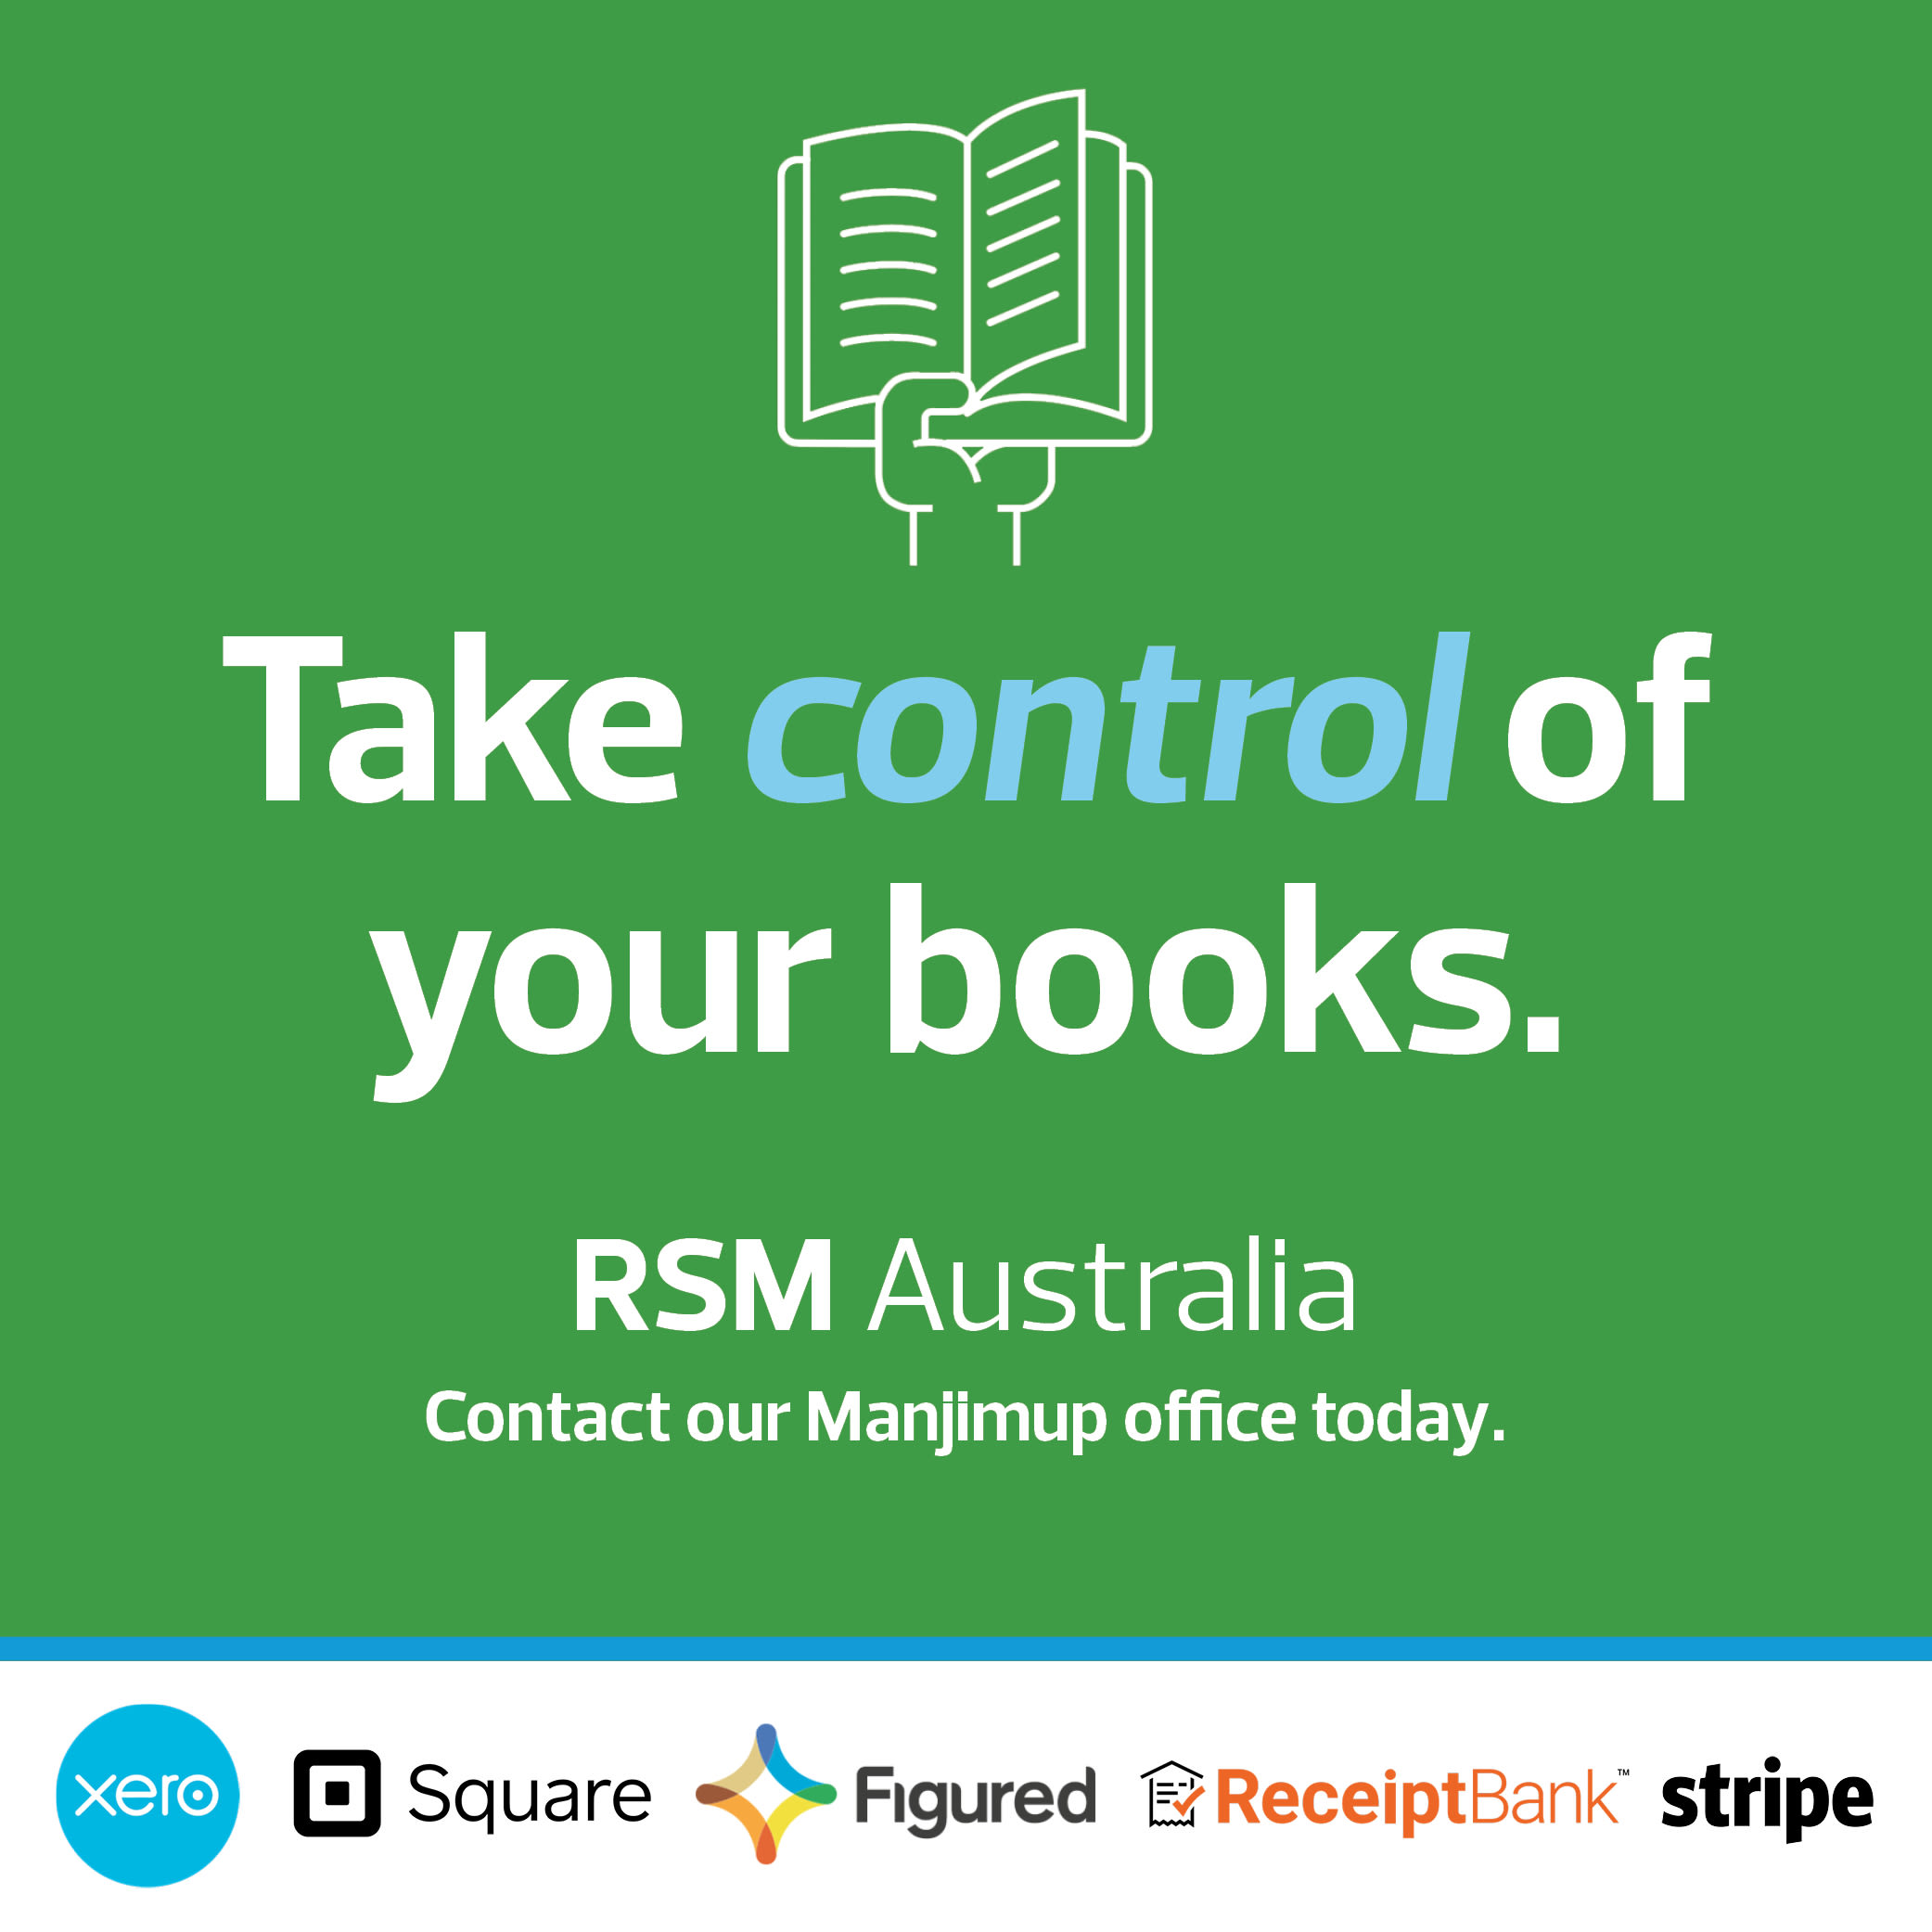 manjimup_-_take_control_of_your_books_with_logos.jpg